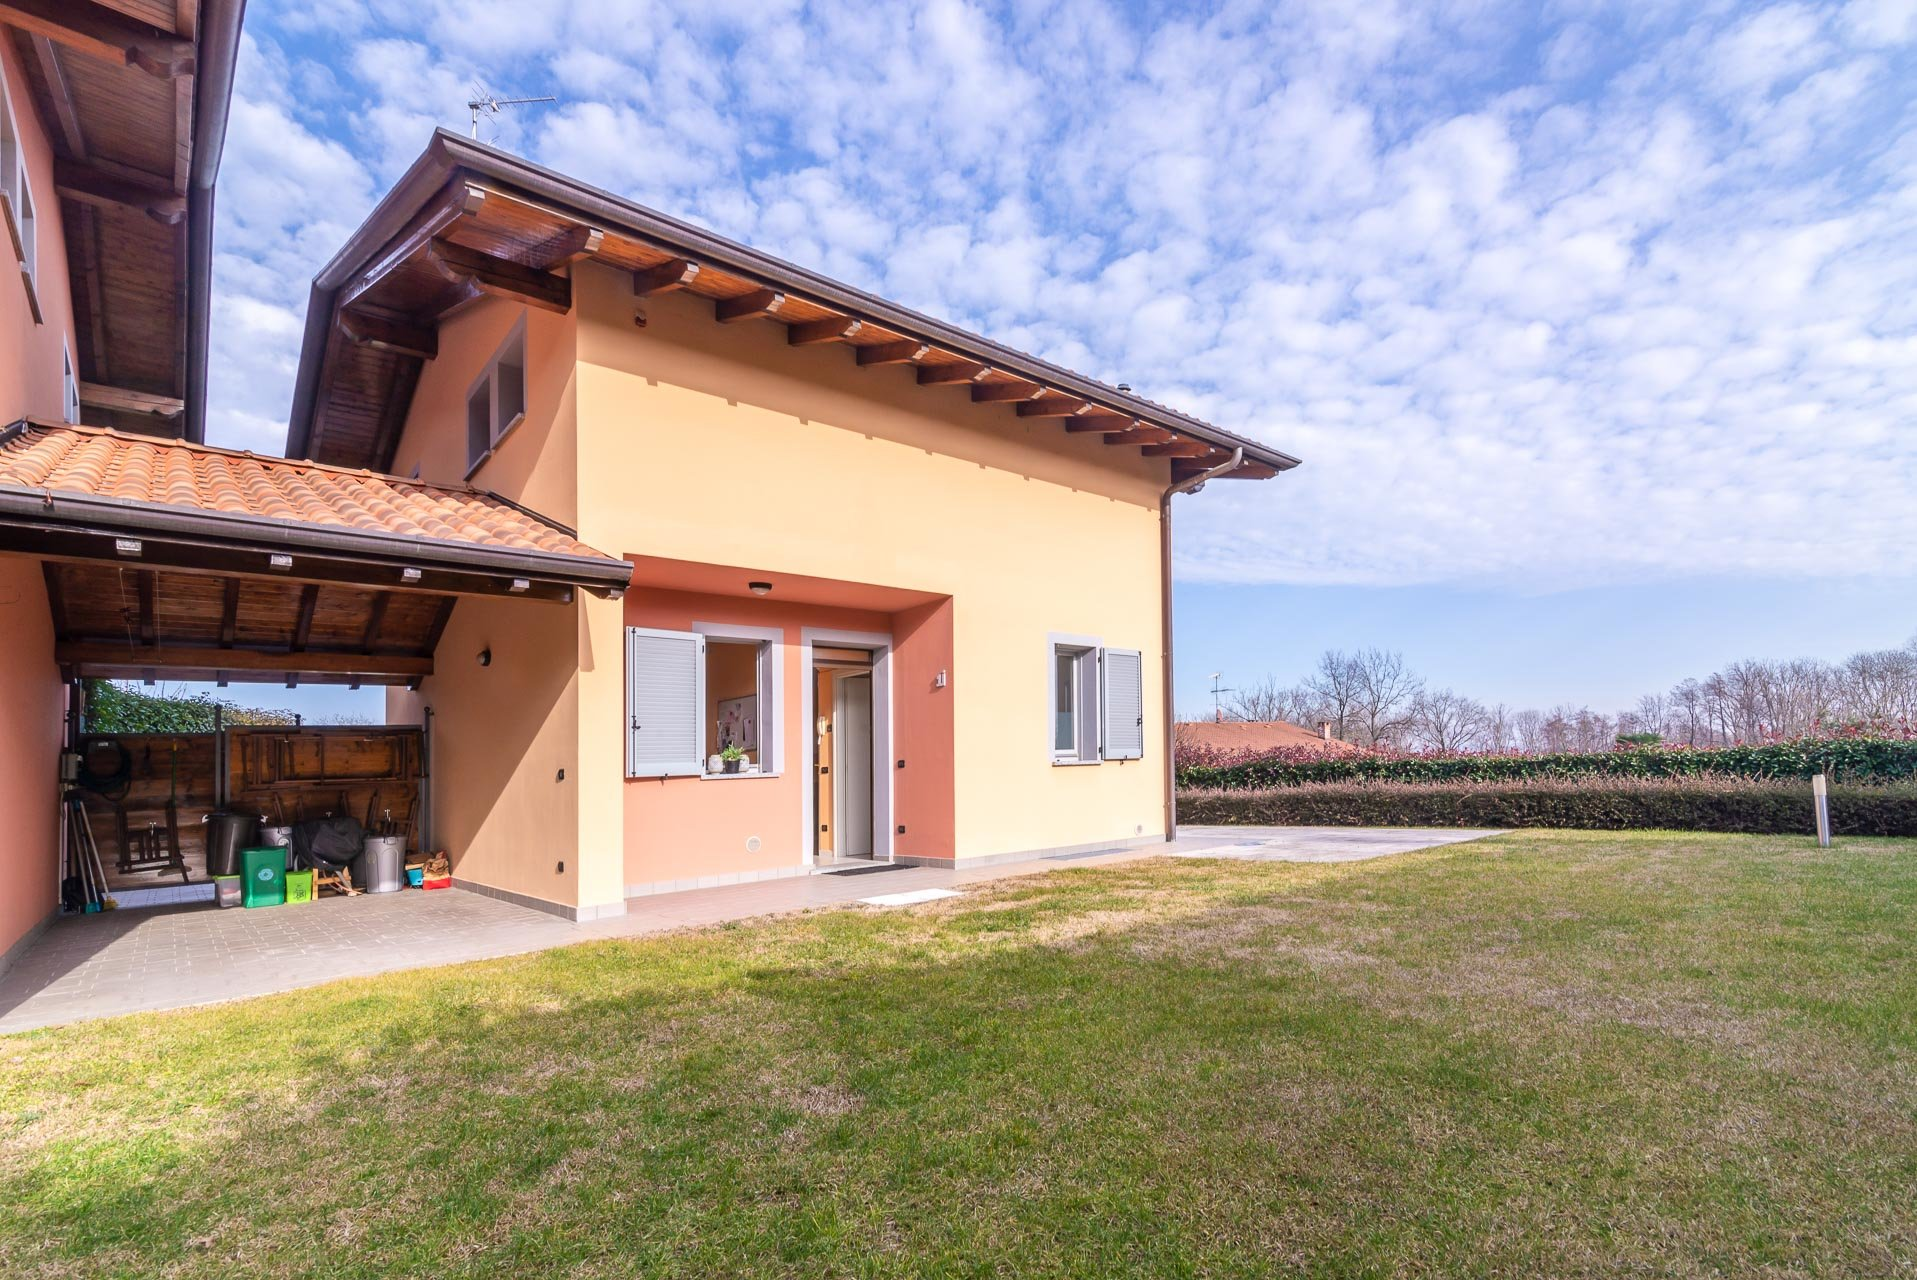 Villa for sale in a residence with swimming pool in Paruzzaro - outside